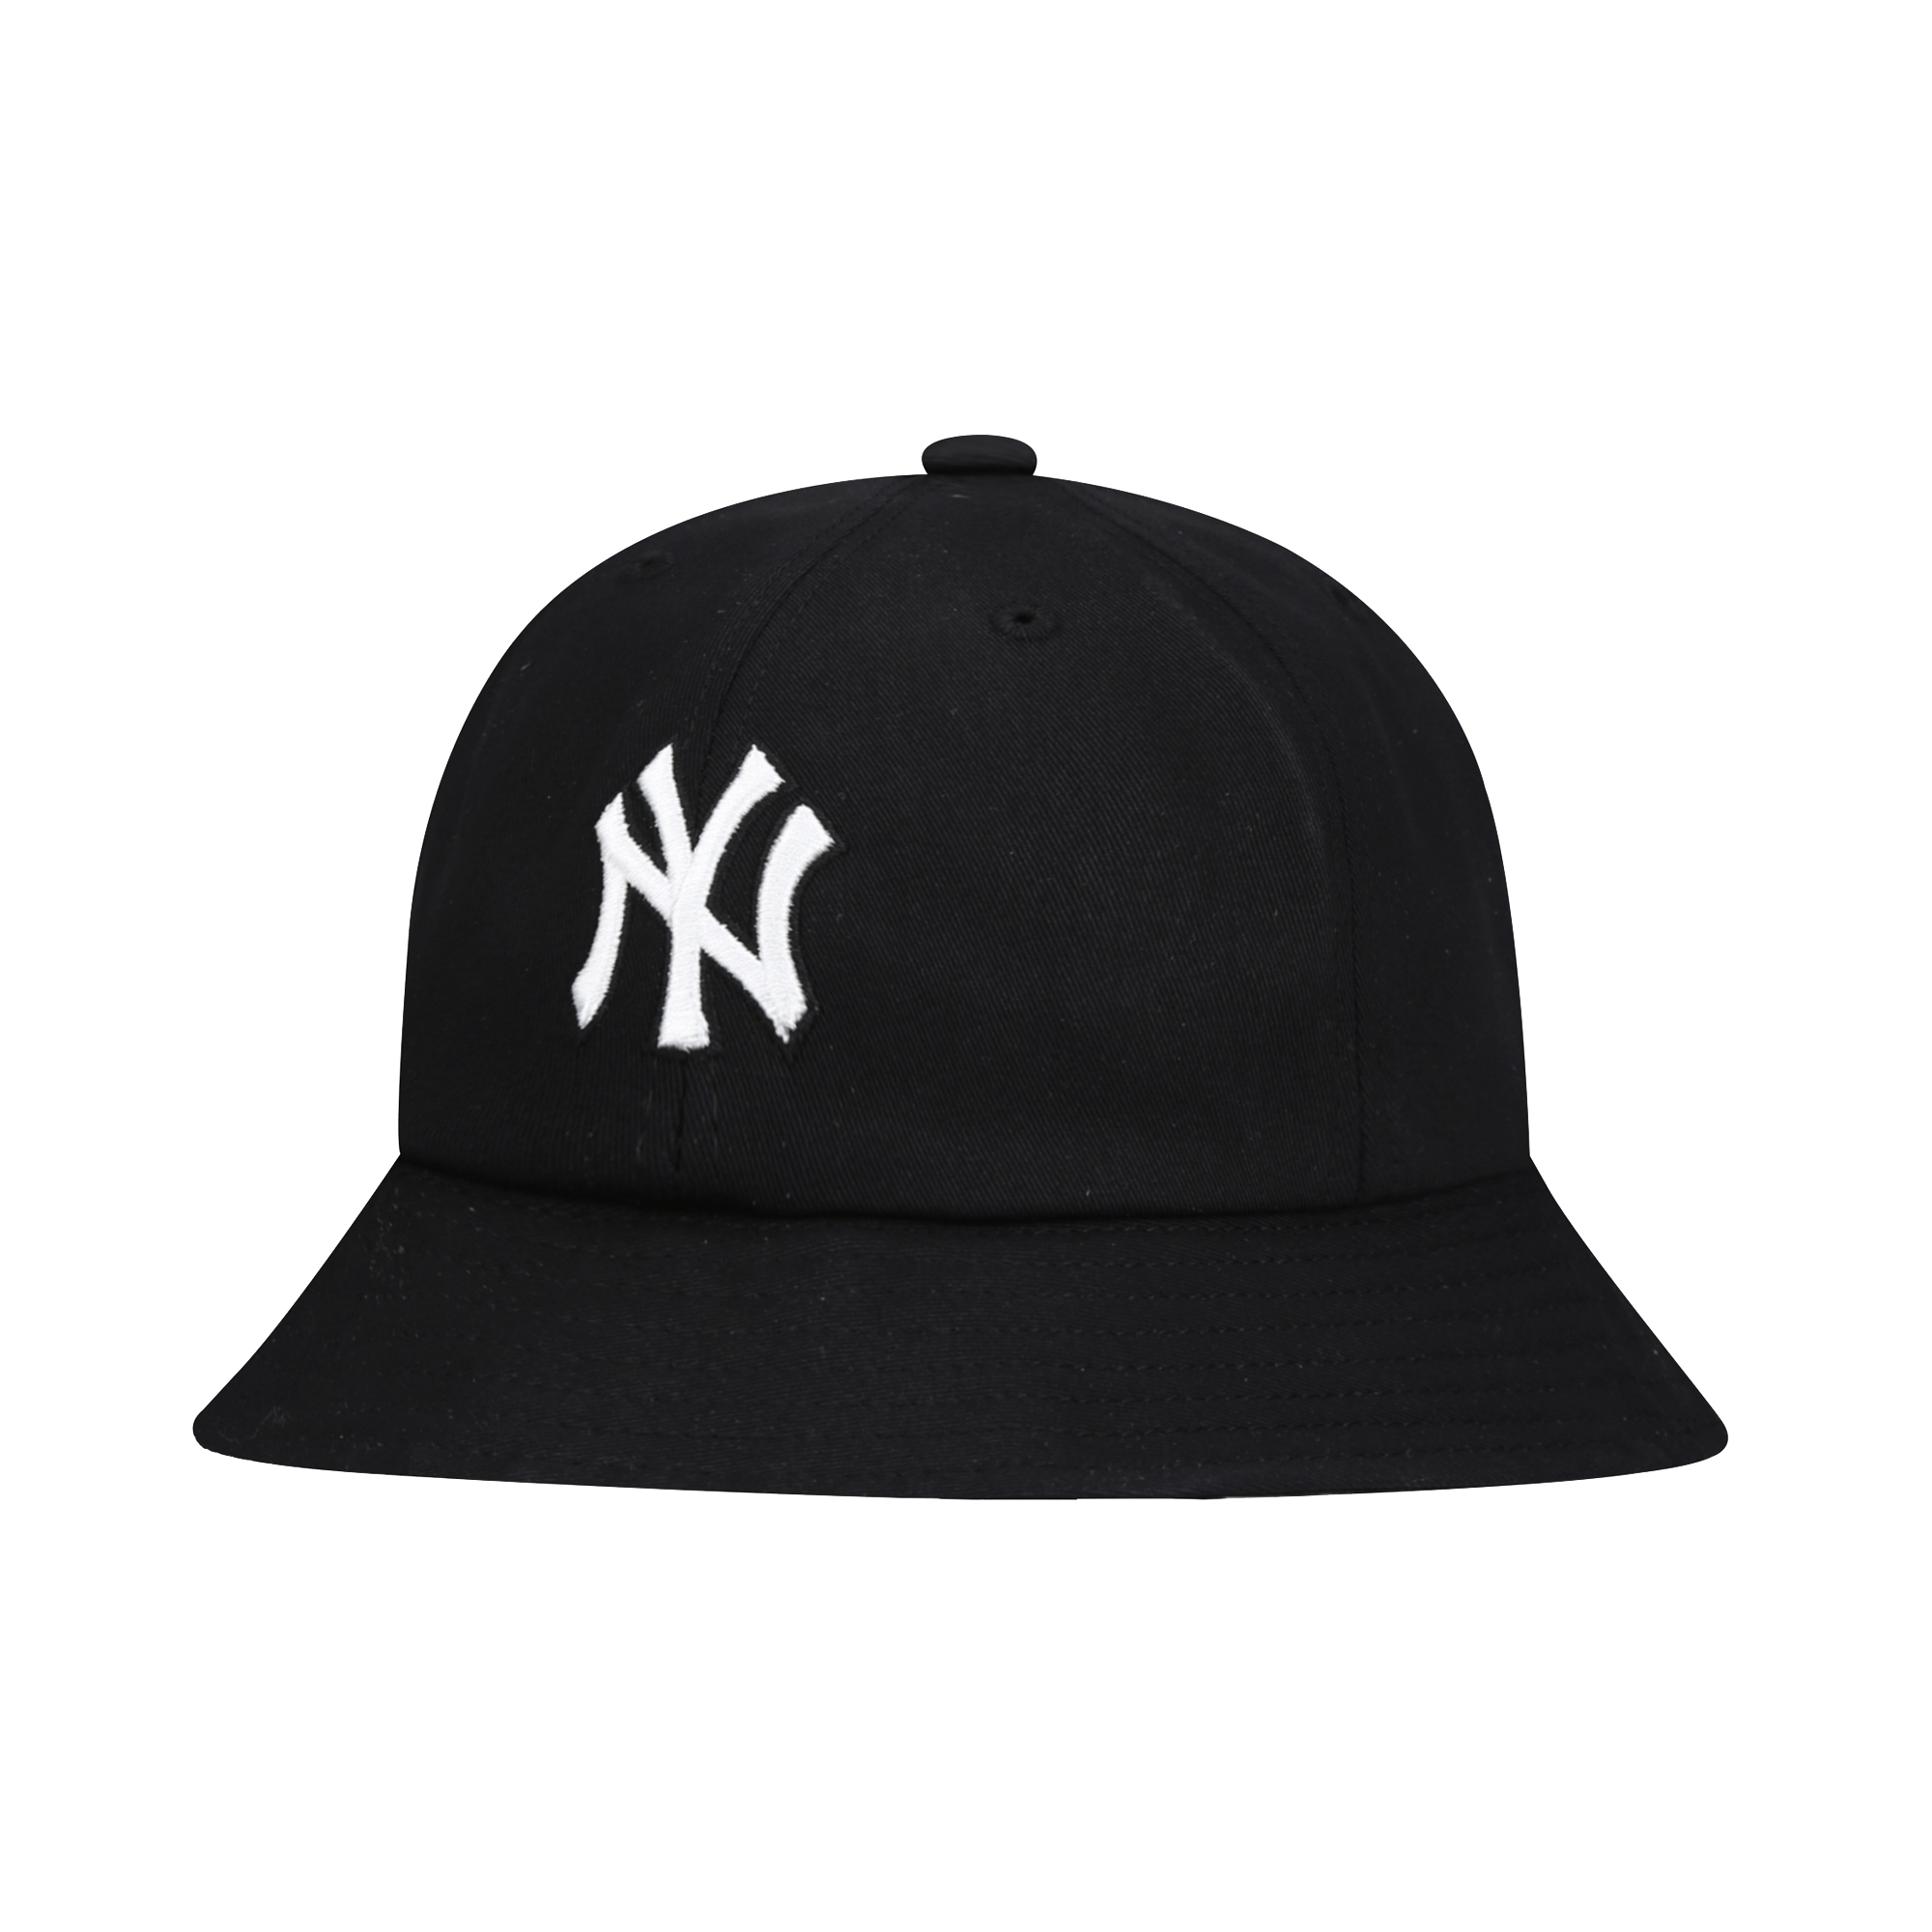 NEW YORK YANKEES BASIC COTTON DOME HAT